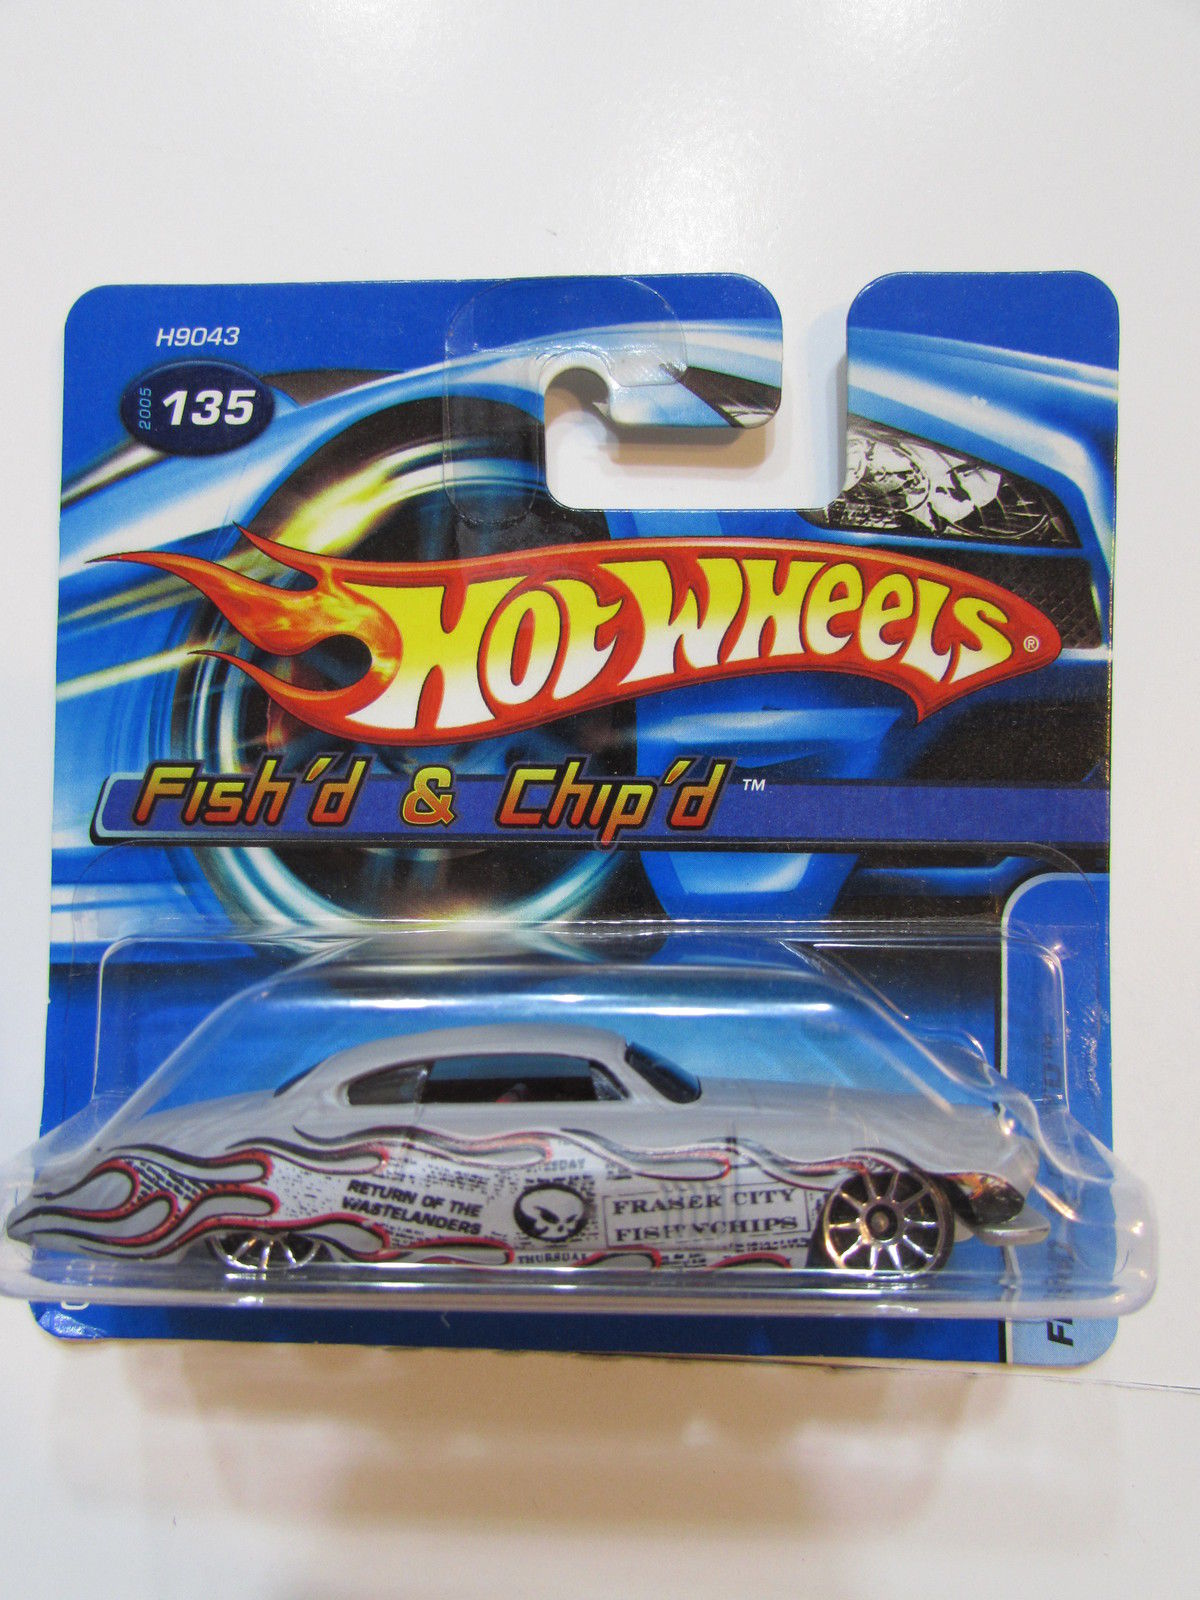 HOT WHEELS 2005 FISH'D & CHIP'D COLLECT #135 GRAY SHORTCARD